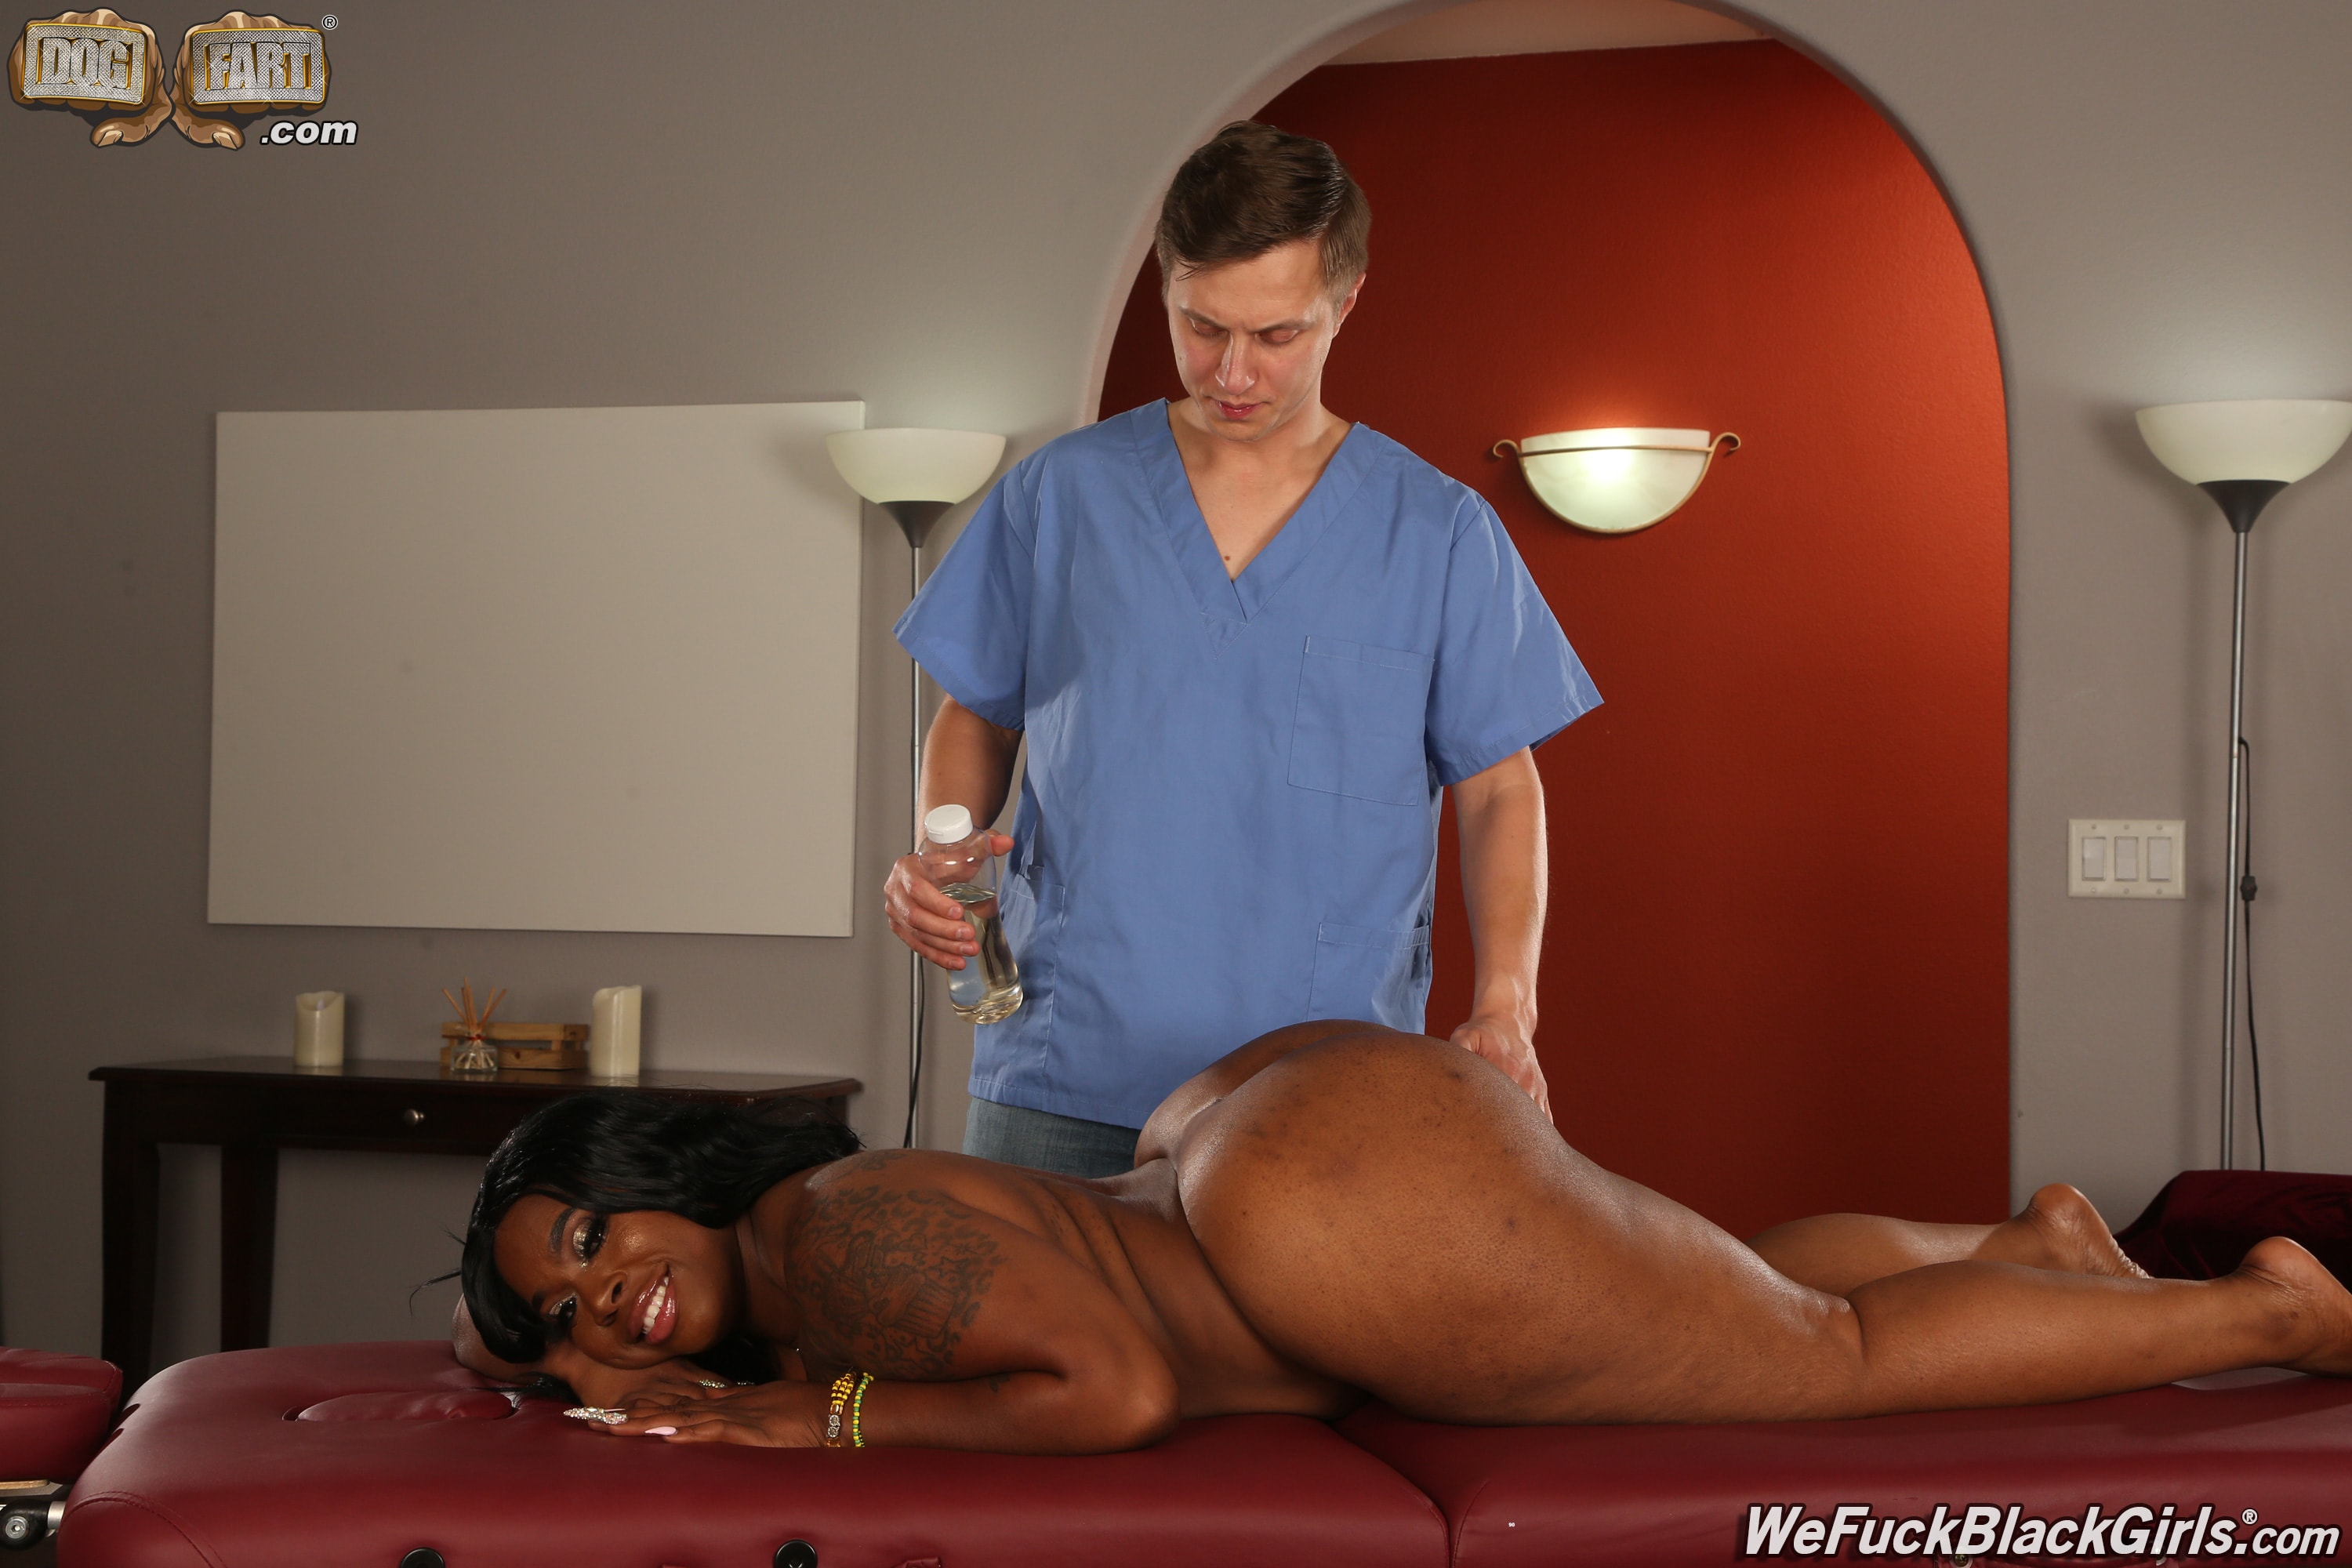 Dogfart '- We Fuck Black Girls - Scene 2' starring Ms London (Photo 4)